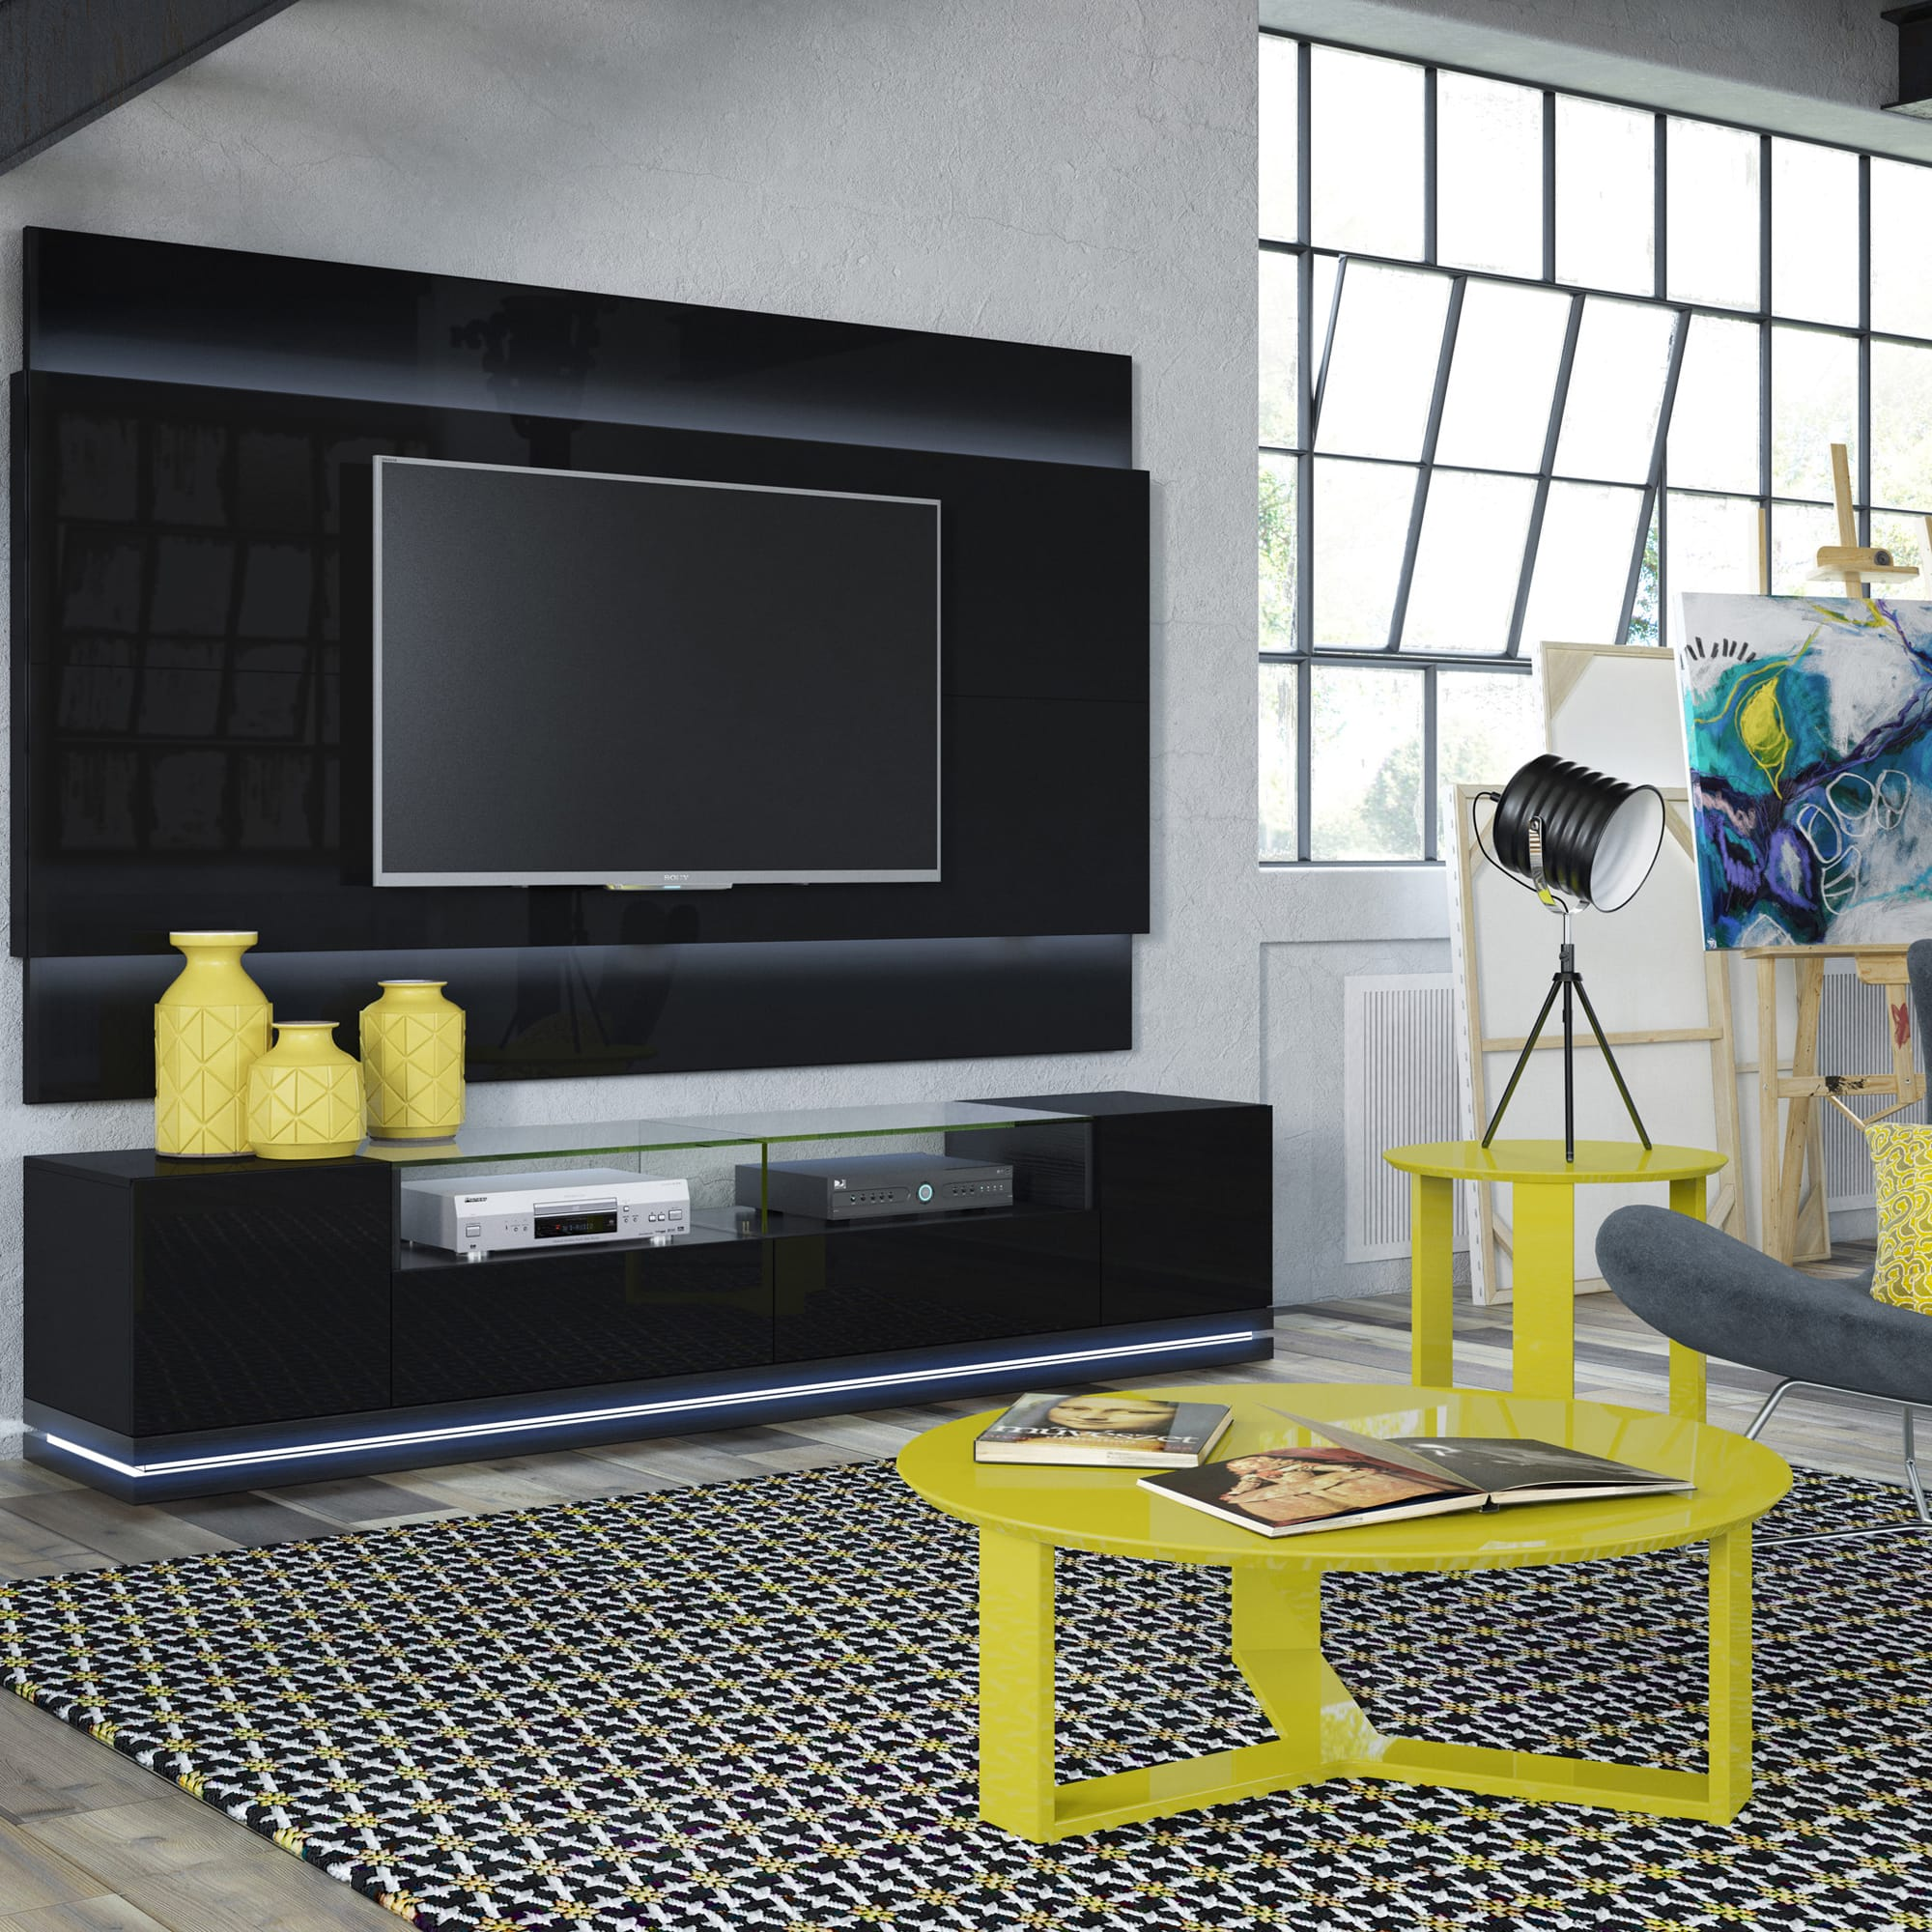 Vanderbilt Black Gloss Black Matte TV Stand wLED Lights by